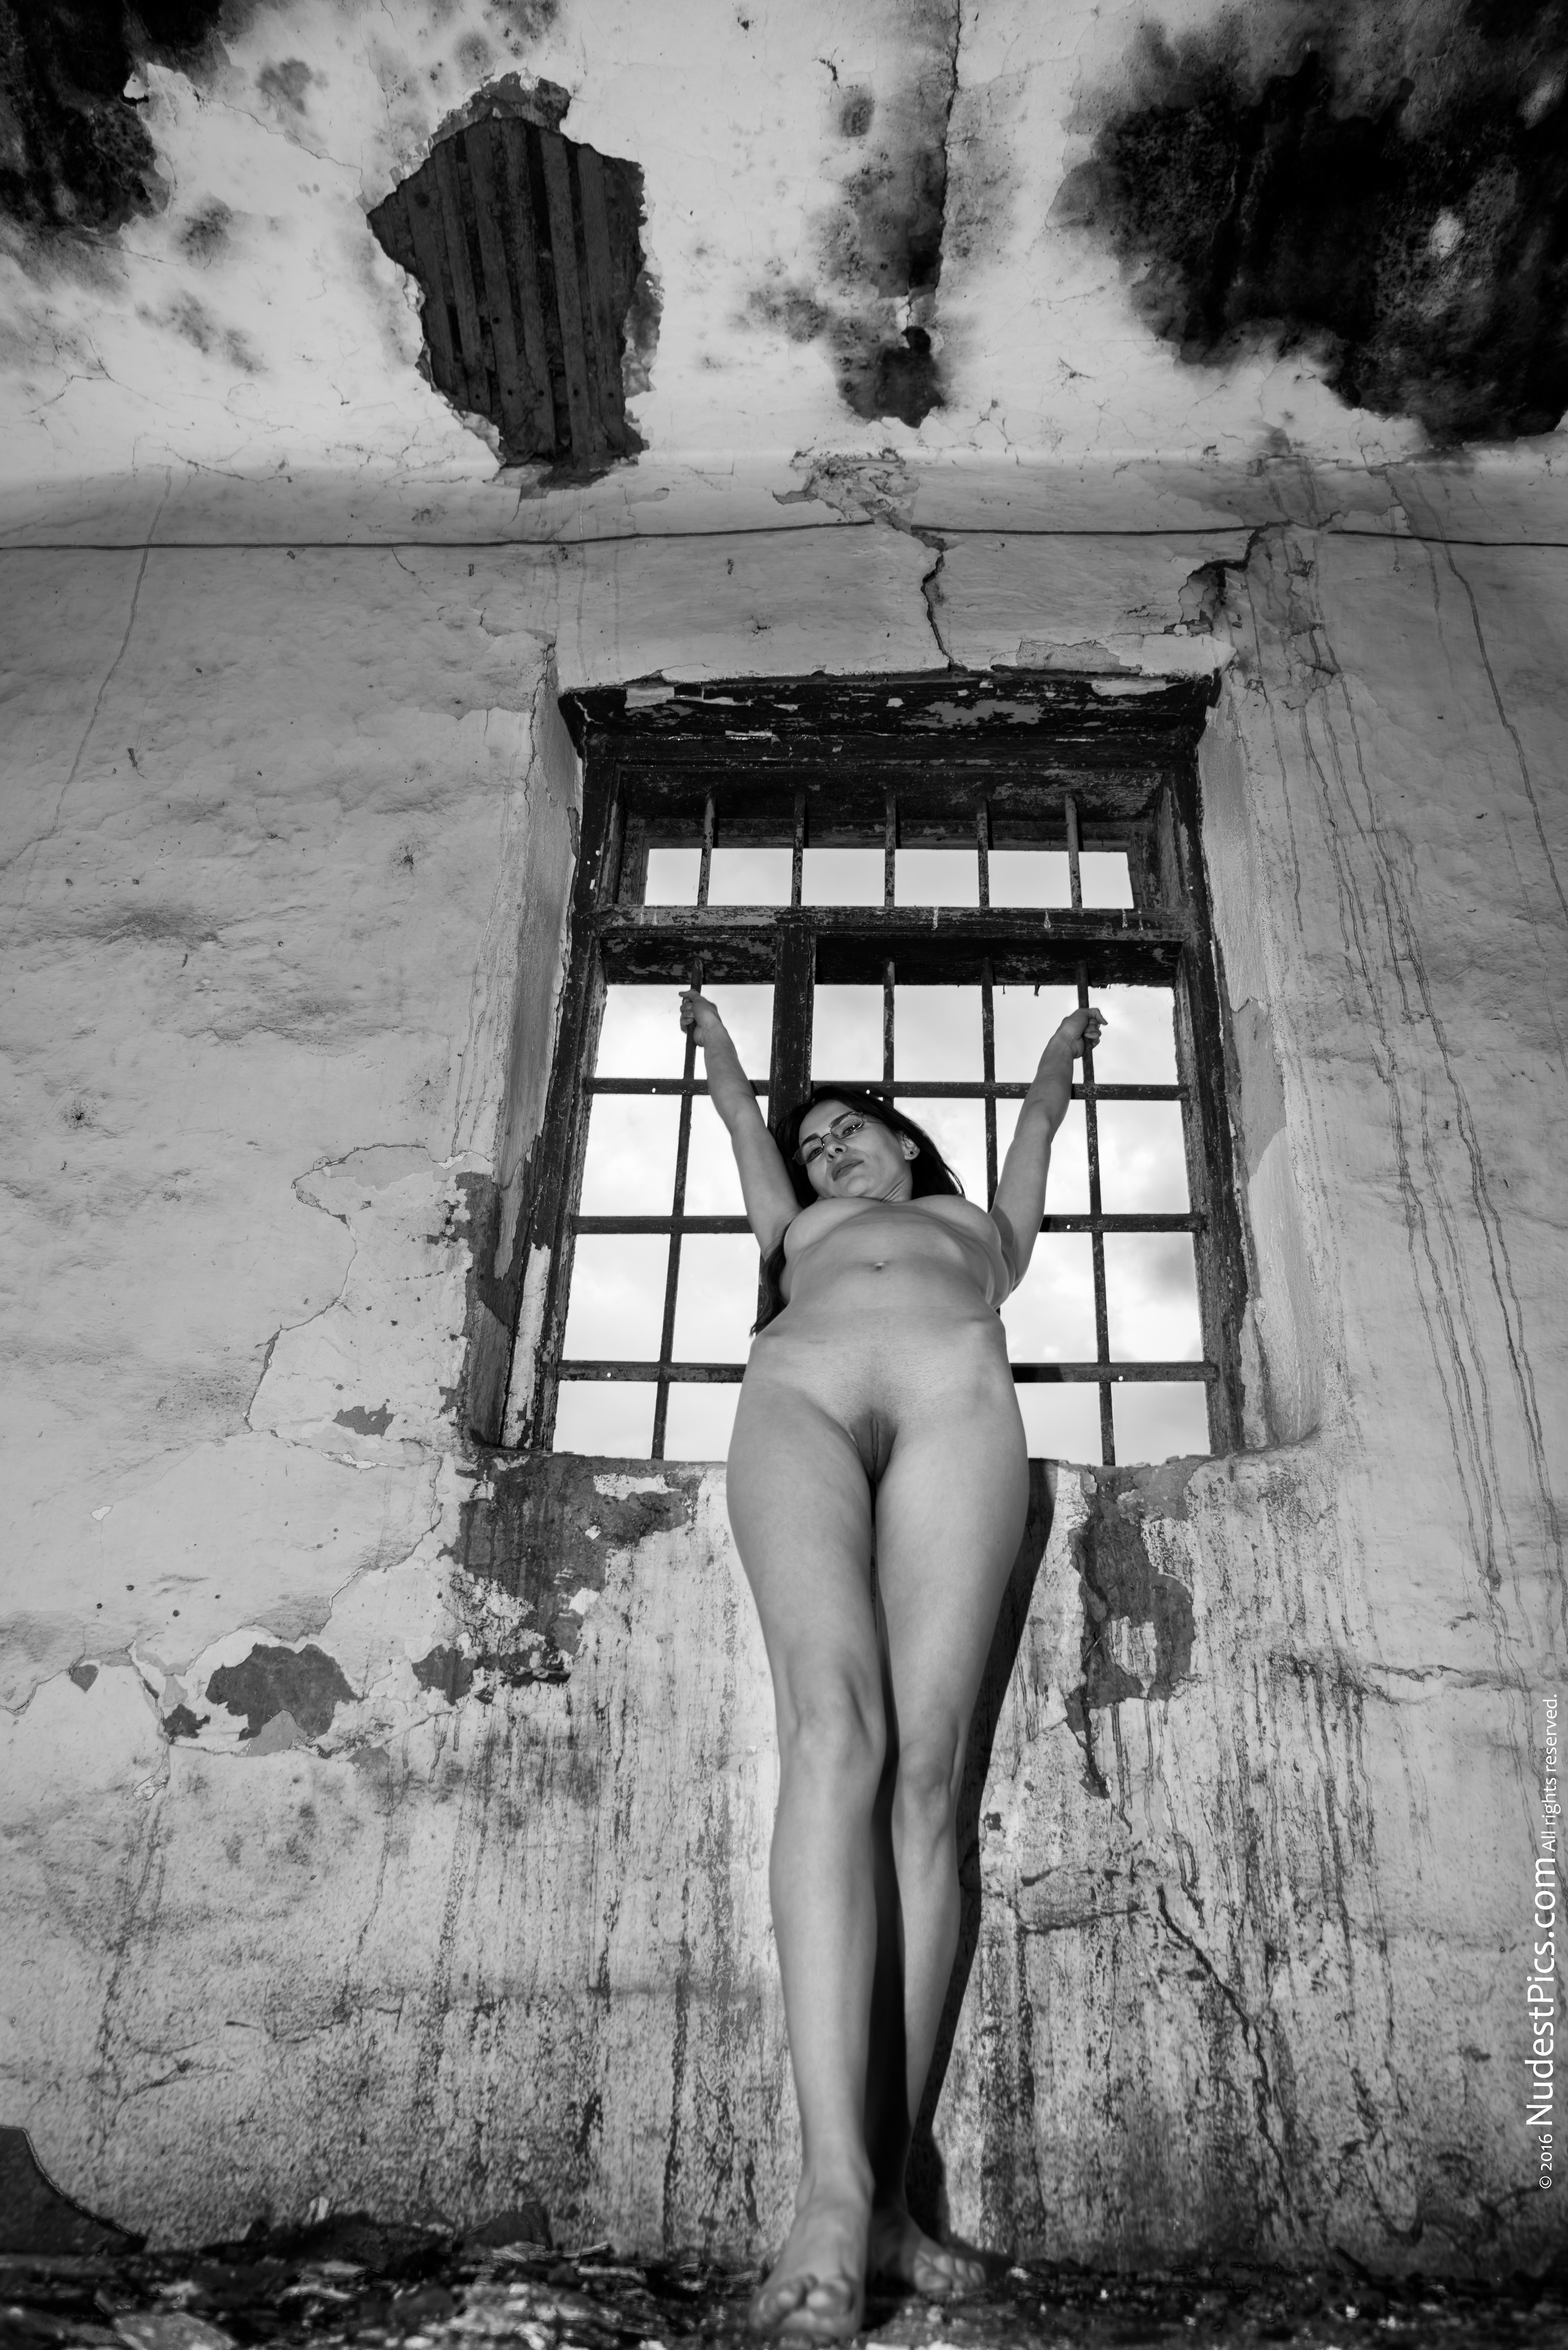 Naked Nerdy Gal in Dirty Ravaged Old Prison B&W